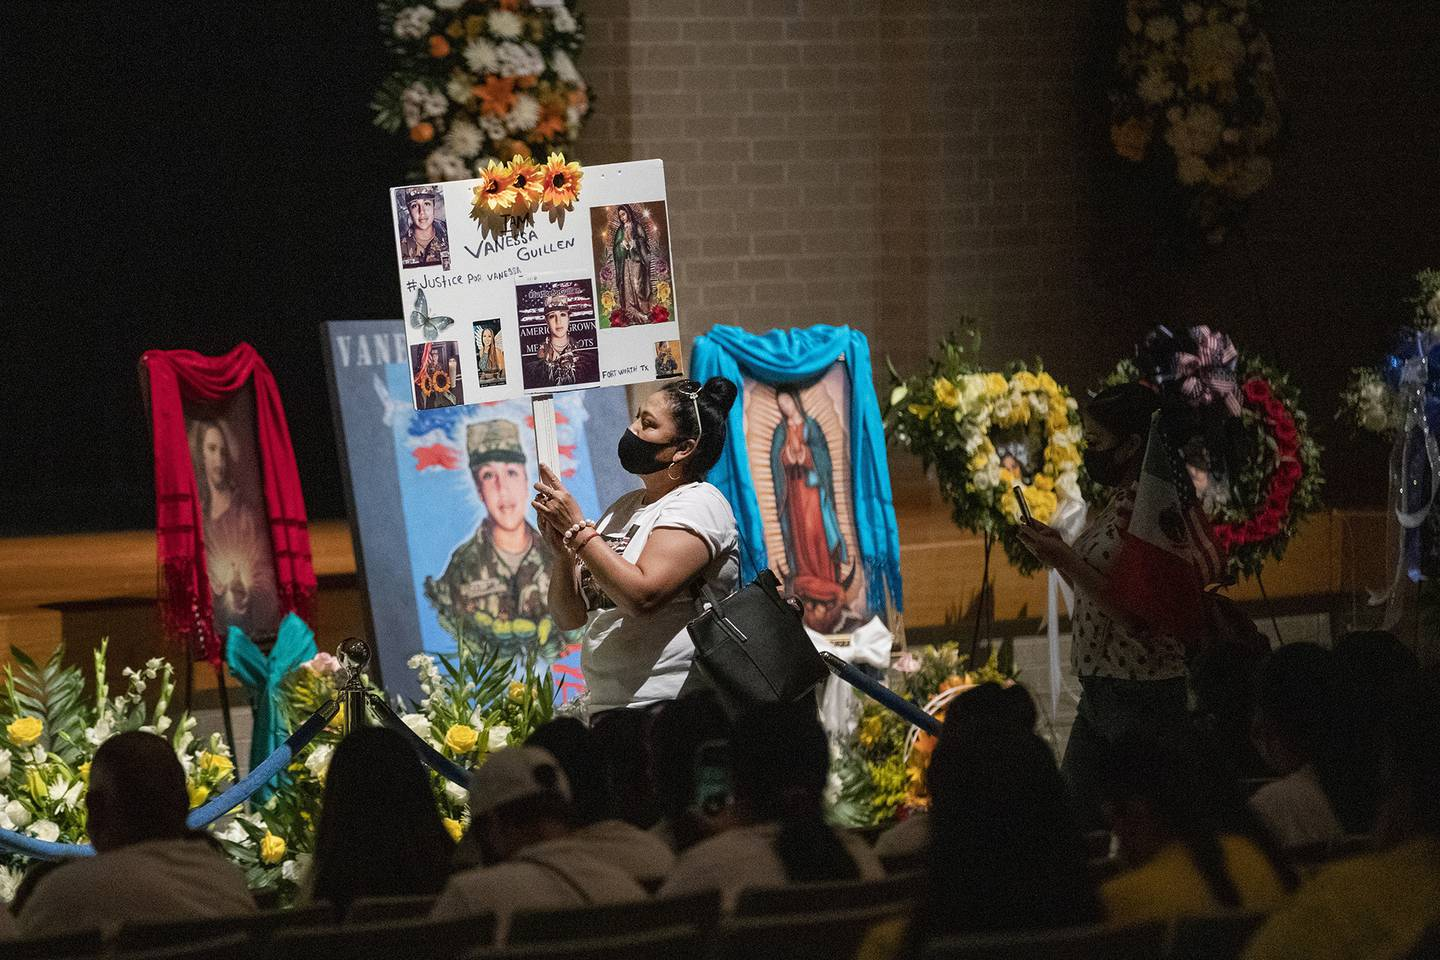 Rosa Samaniego holds a sign demanding justice for Spc. Vanessa Guillen at a memorial service in honor of the soldier on Friday, Aug. 14, 2020, in Houston.